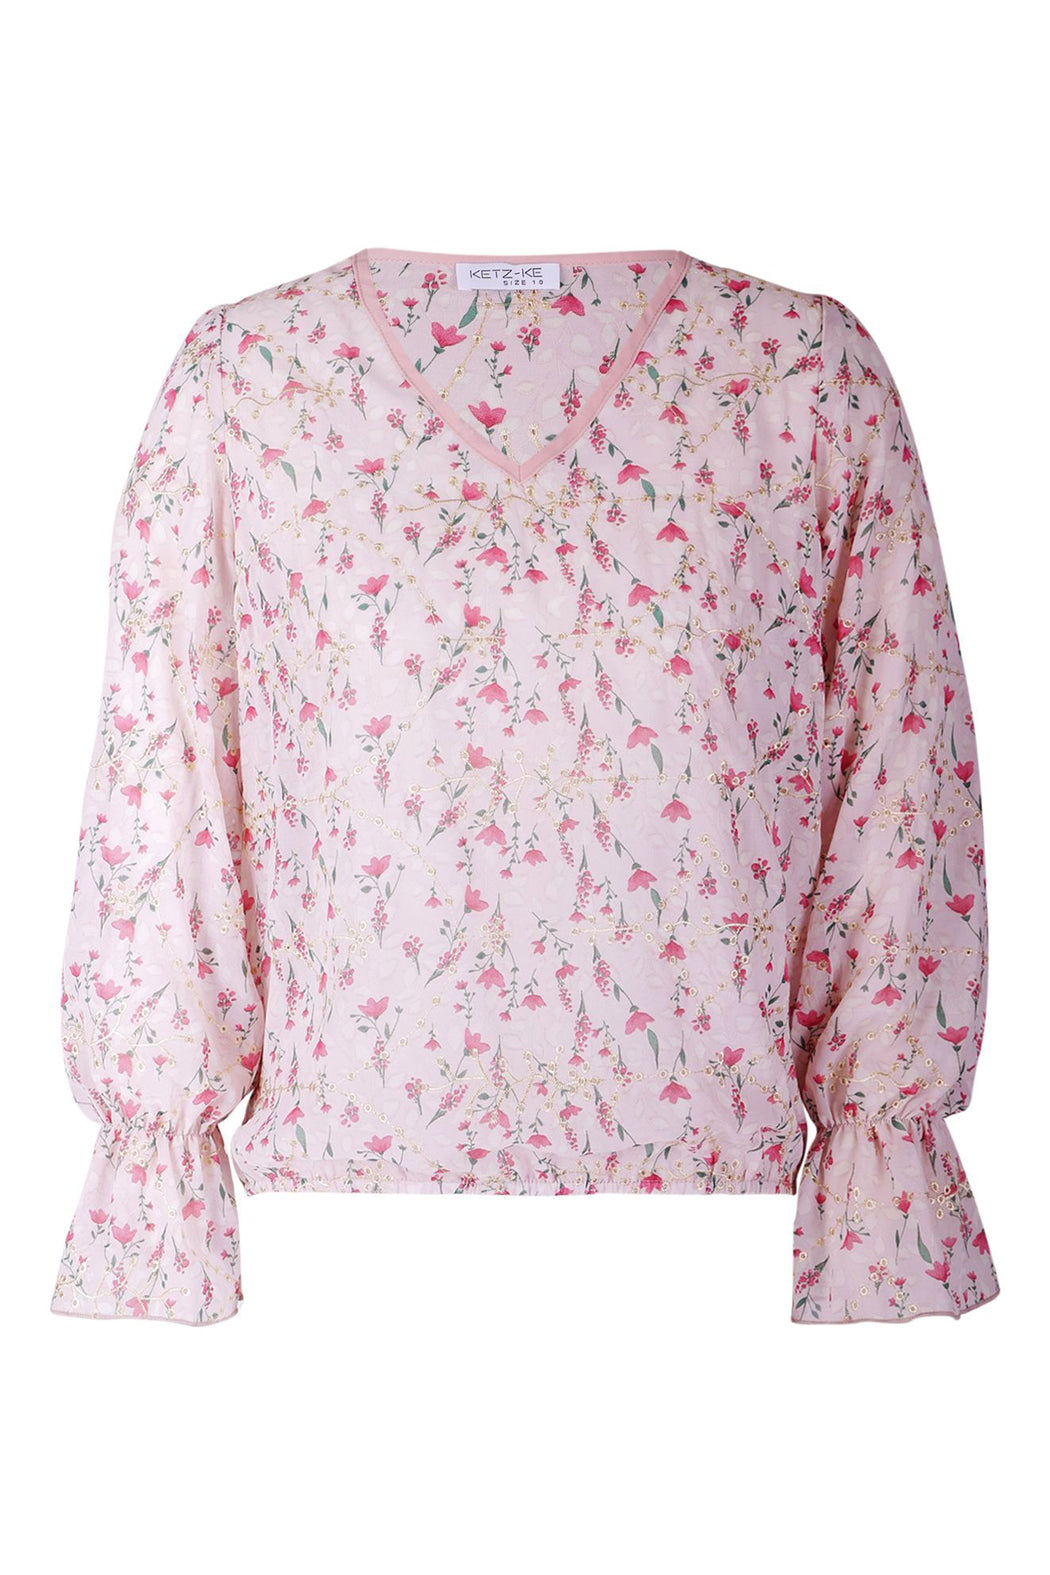 Ketz-ke Chapter Top - Pink | Shop Ketz-ke at Wallace & Gibbs NZ